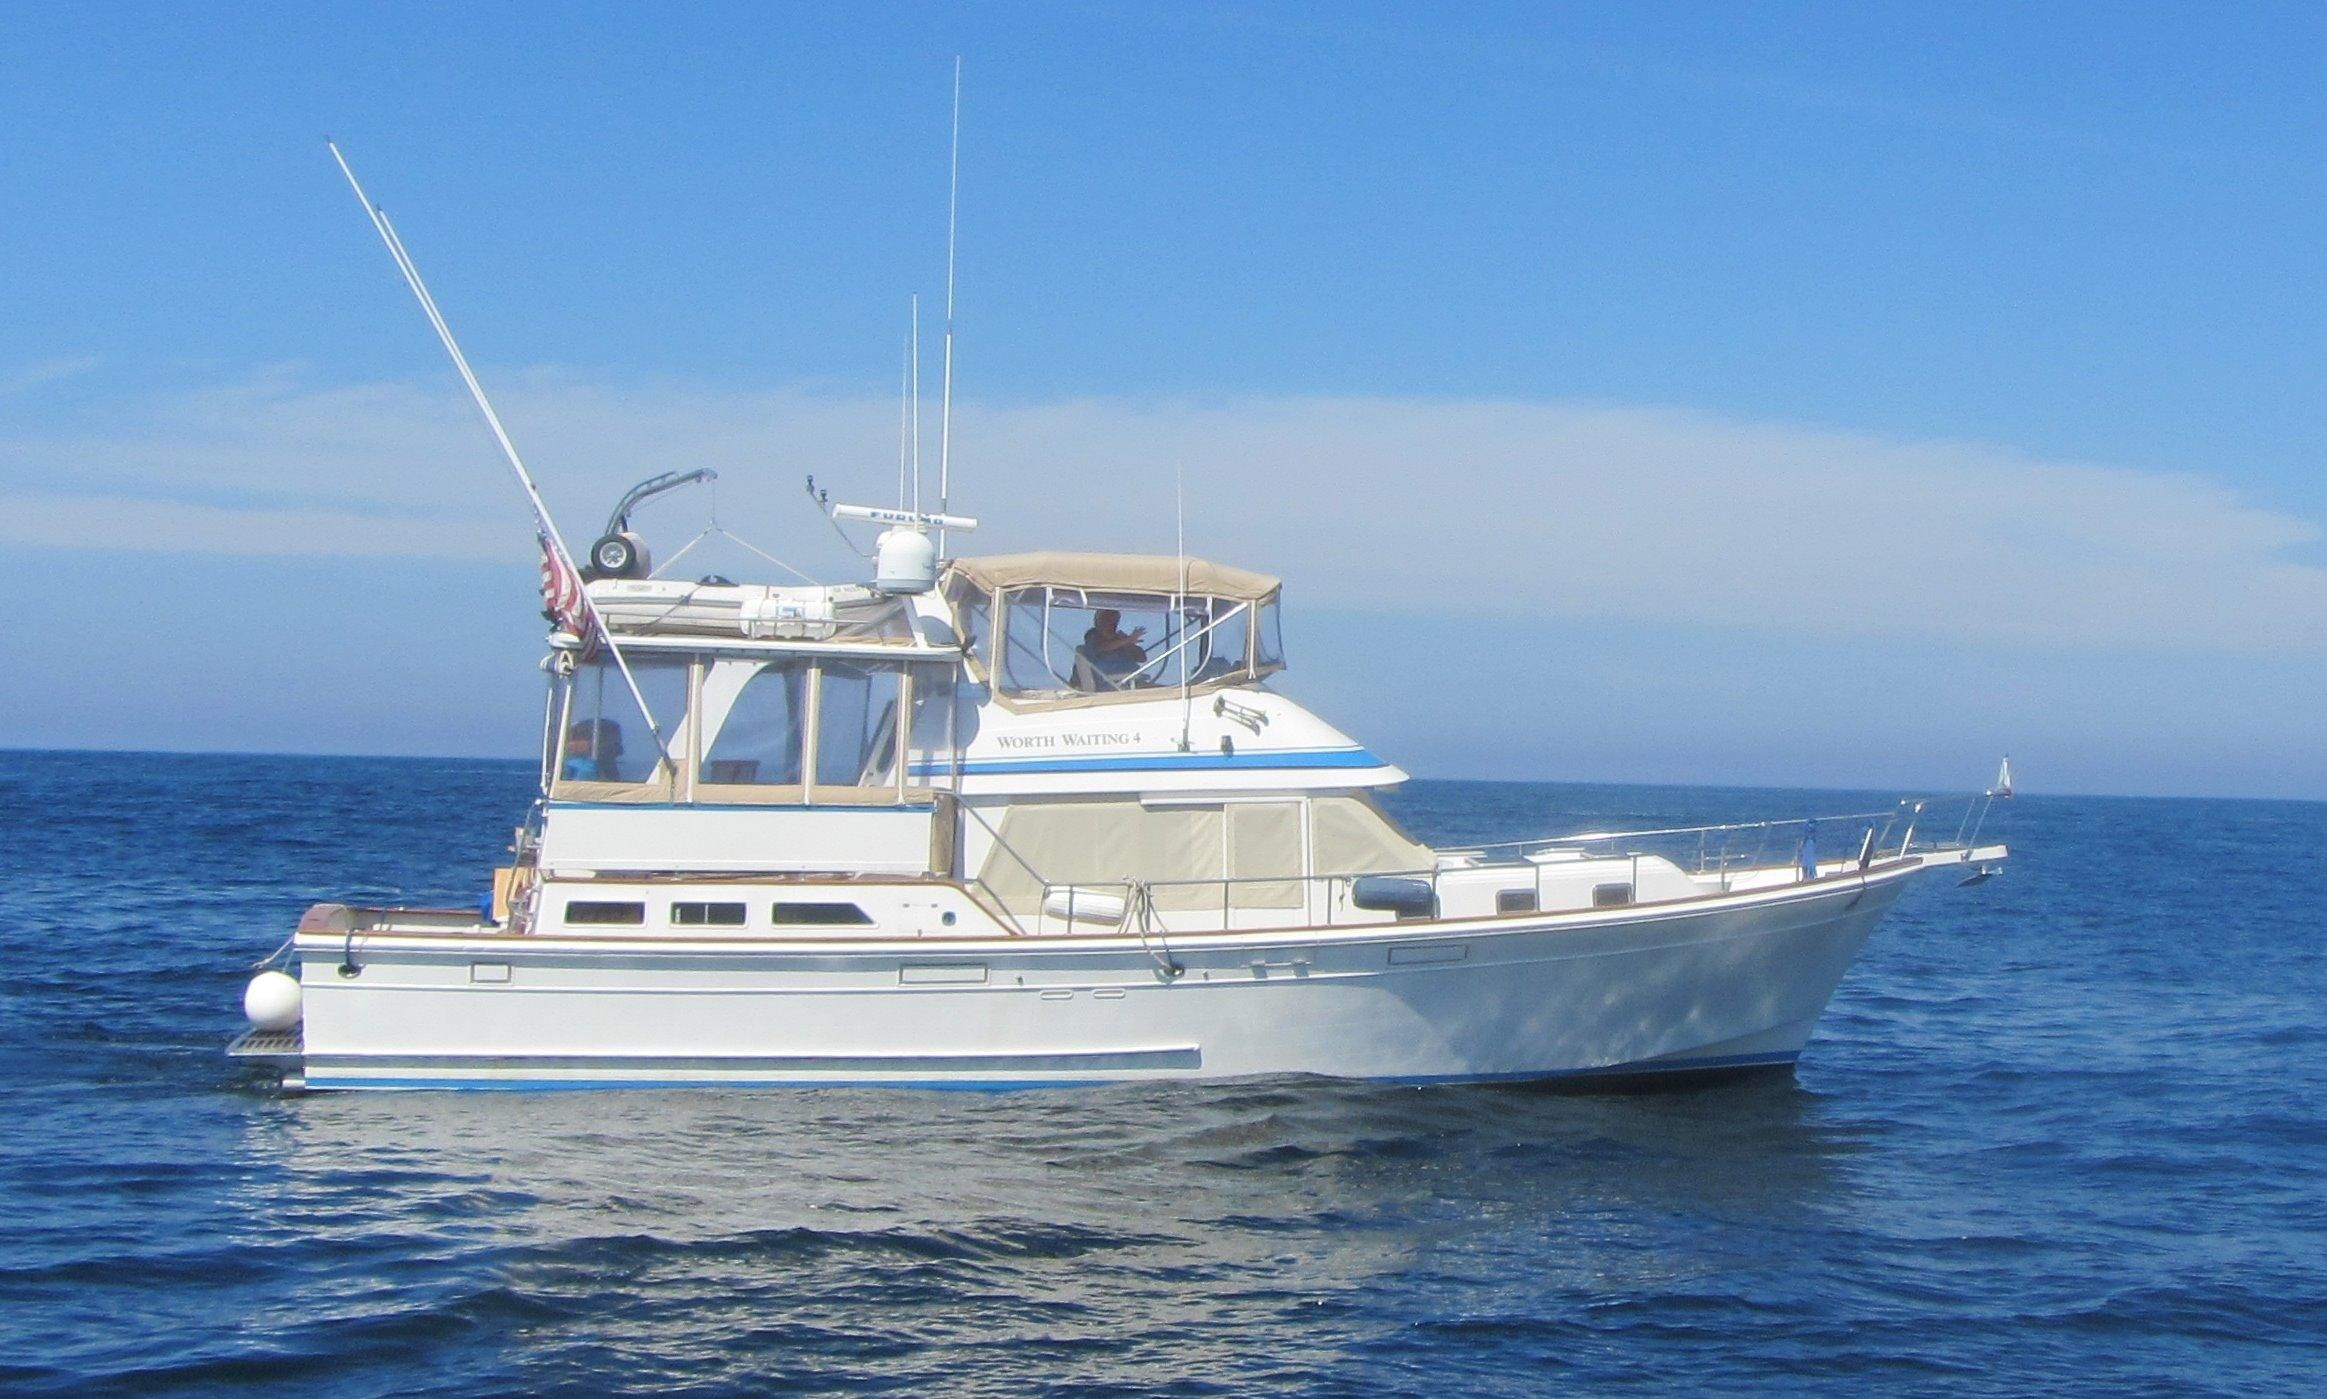 1986 Offshore Yachtfisher Power Boat For Sale Www